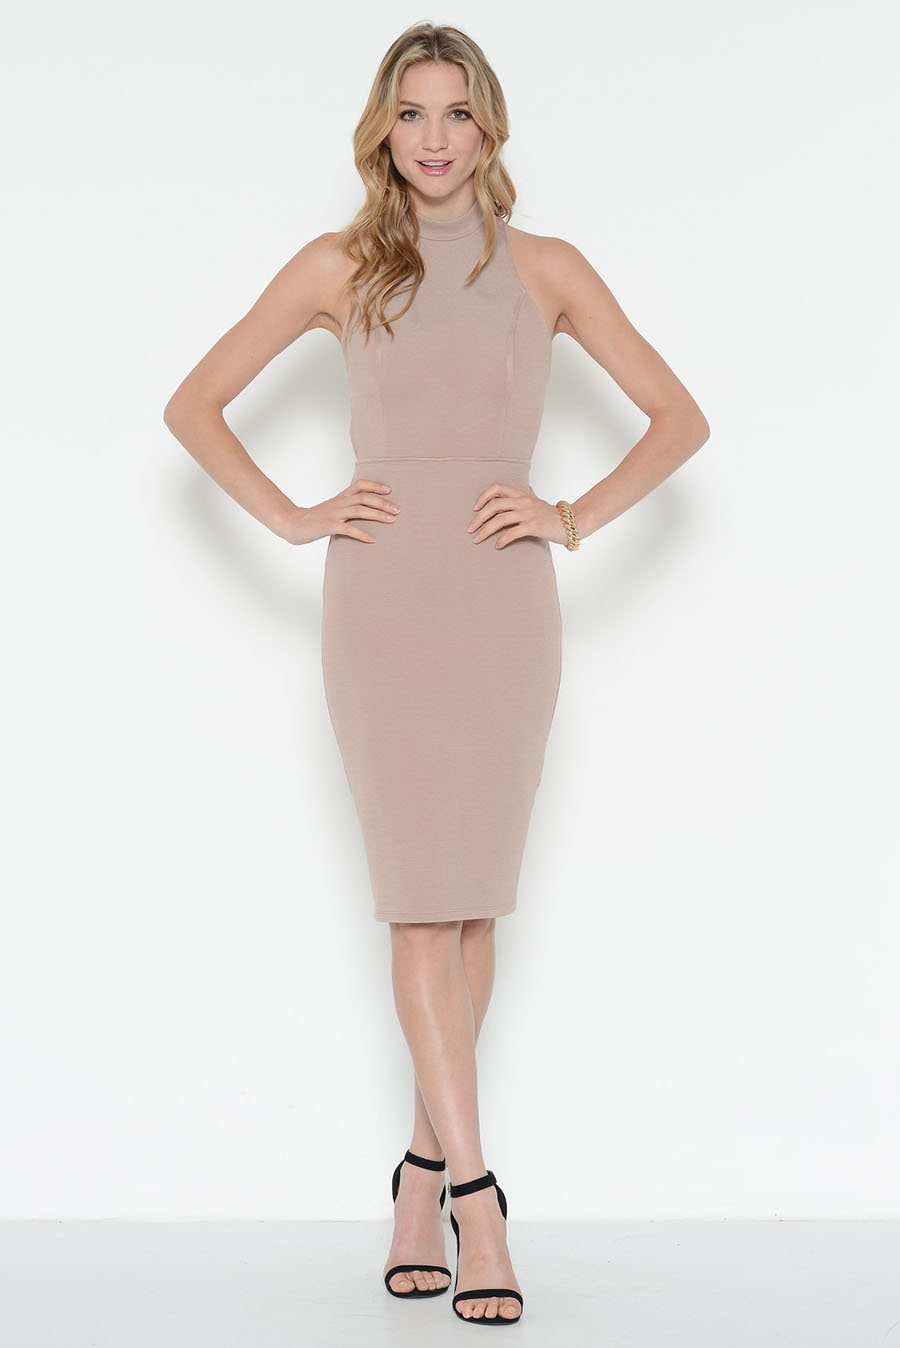 CROSS BACK MIDI DRESS - orangeshine.com